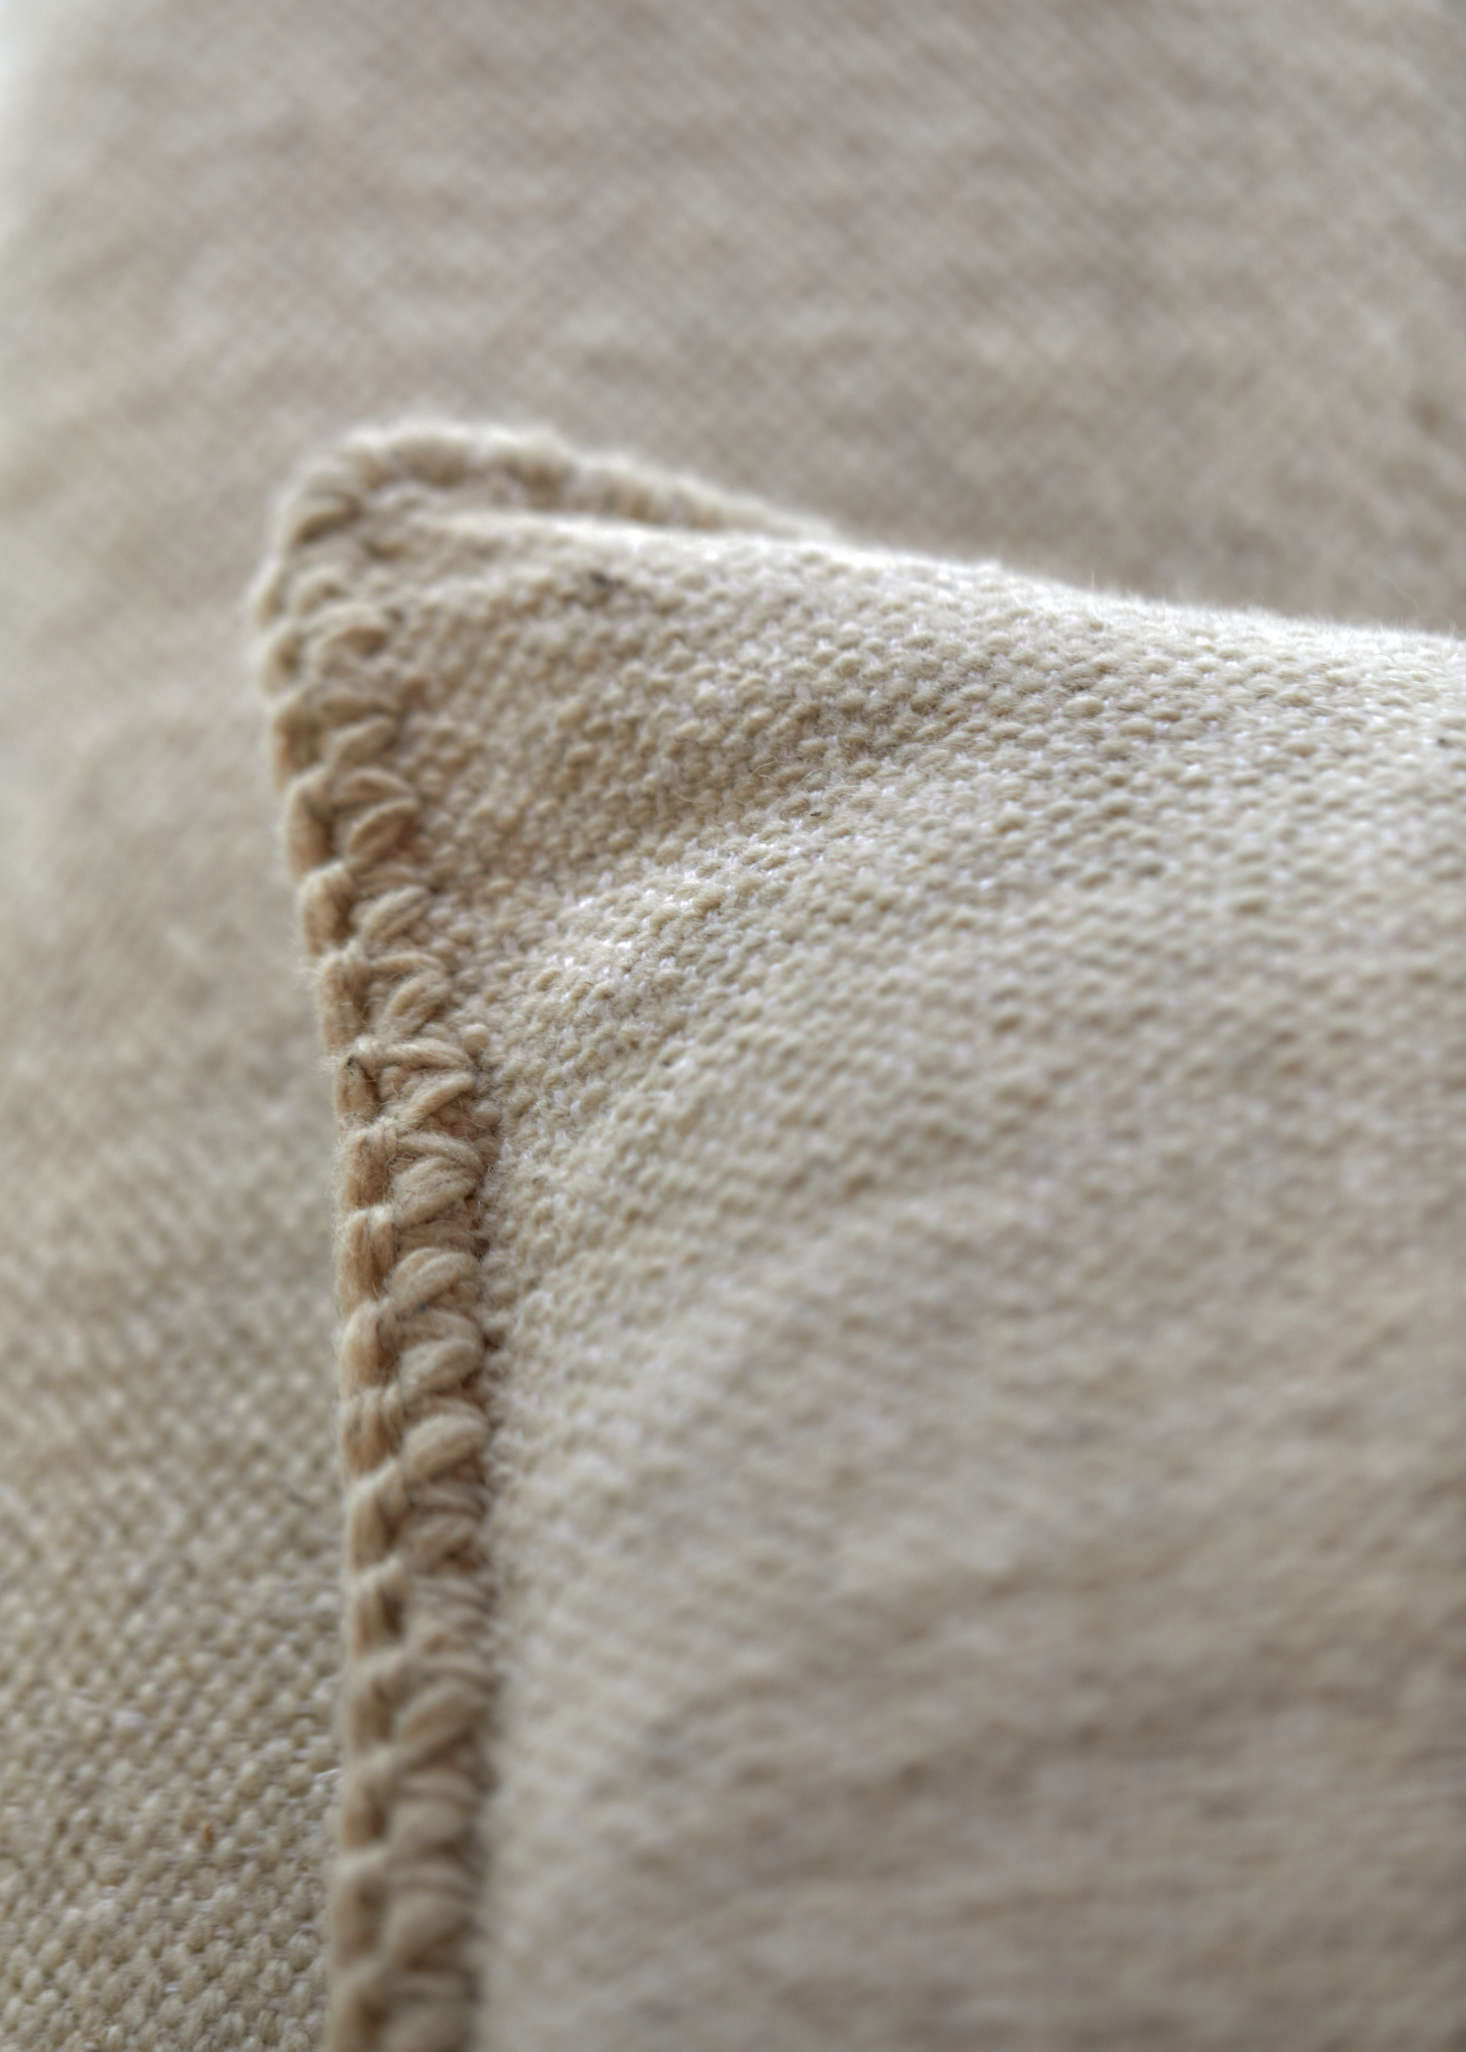 The bedding is made of textiles hand-stitched by local Oaxacan artisans using natural, neutral-toned fibers.